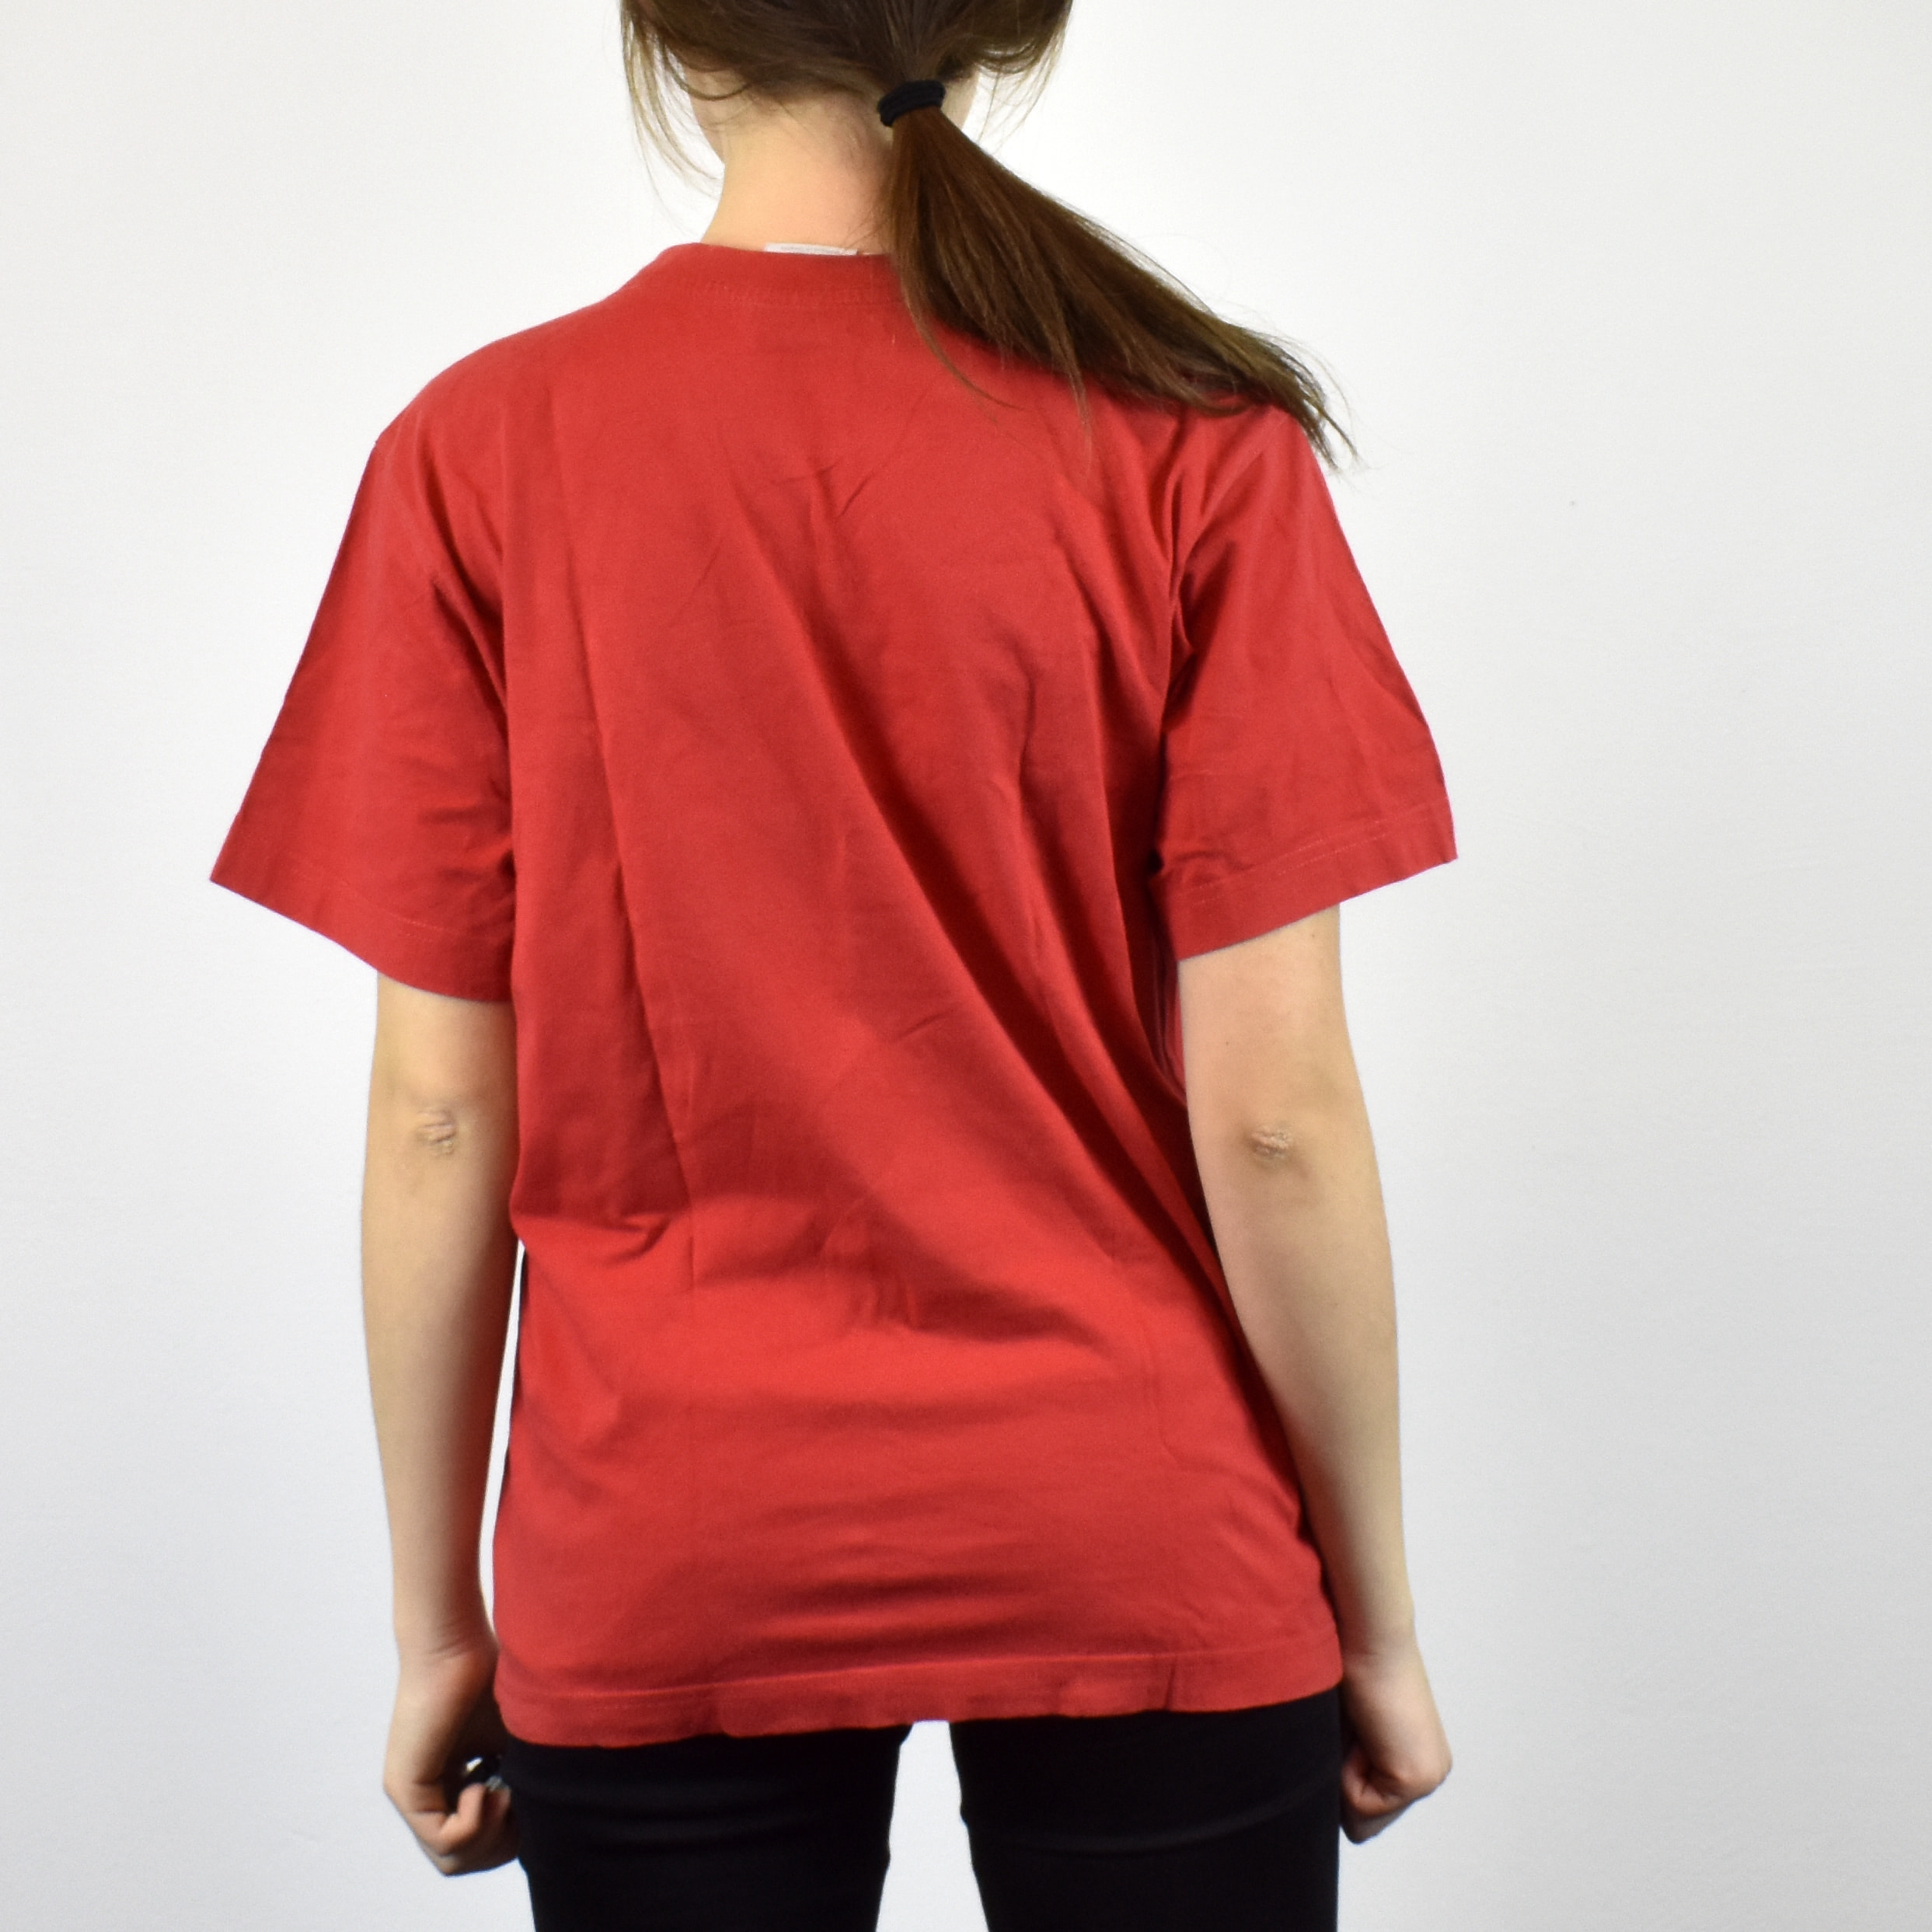 9f7e71bde Unisex Vintage Adidas t-shirt tee in red has a logo on the front size S